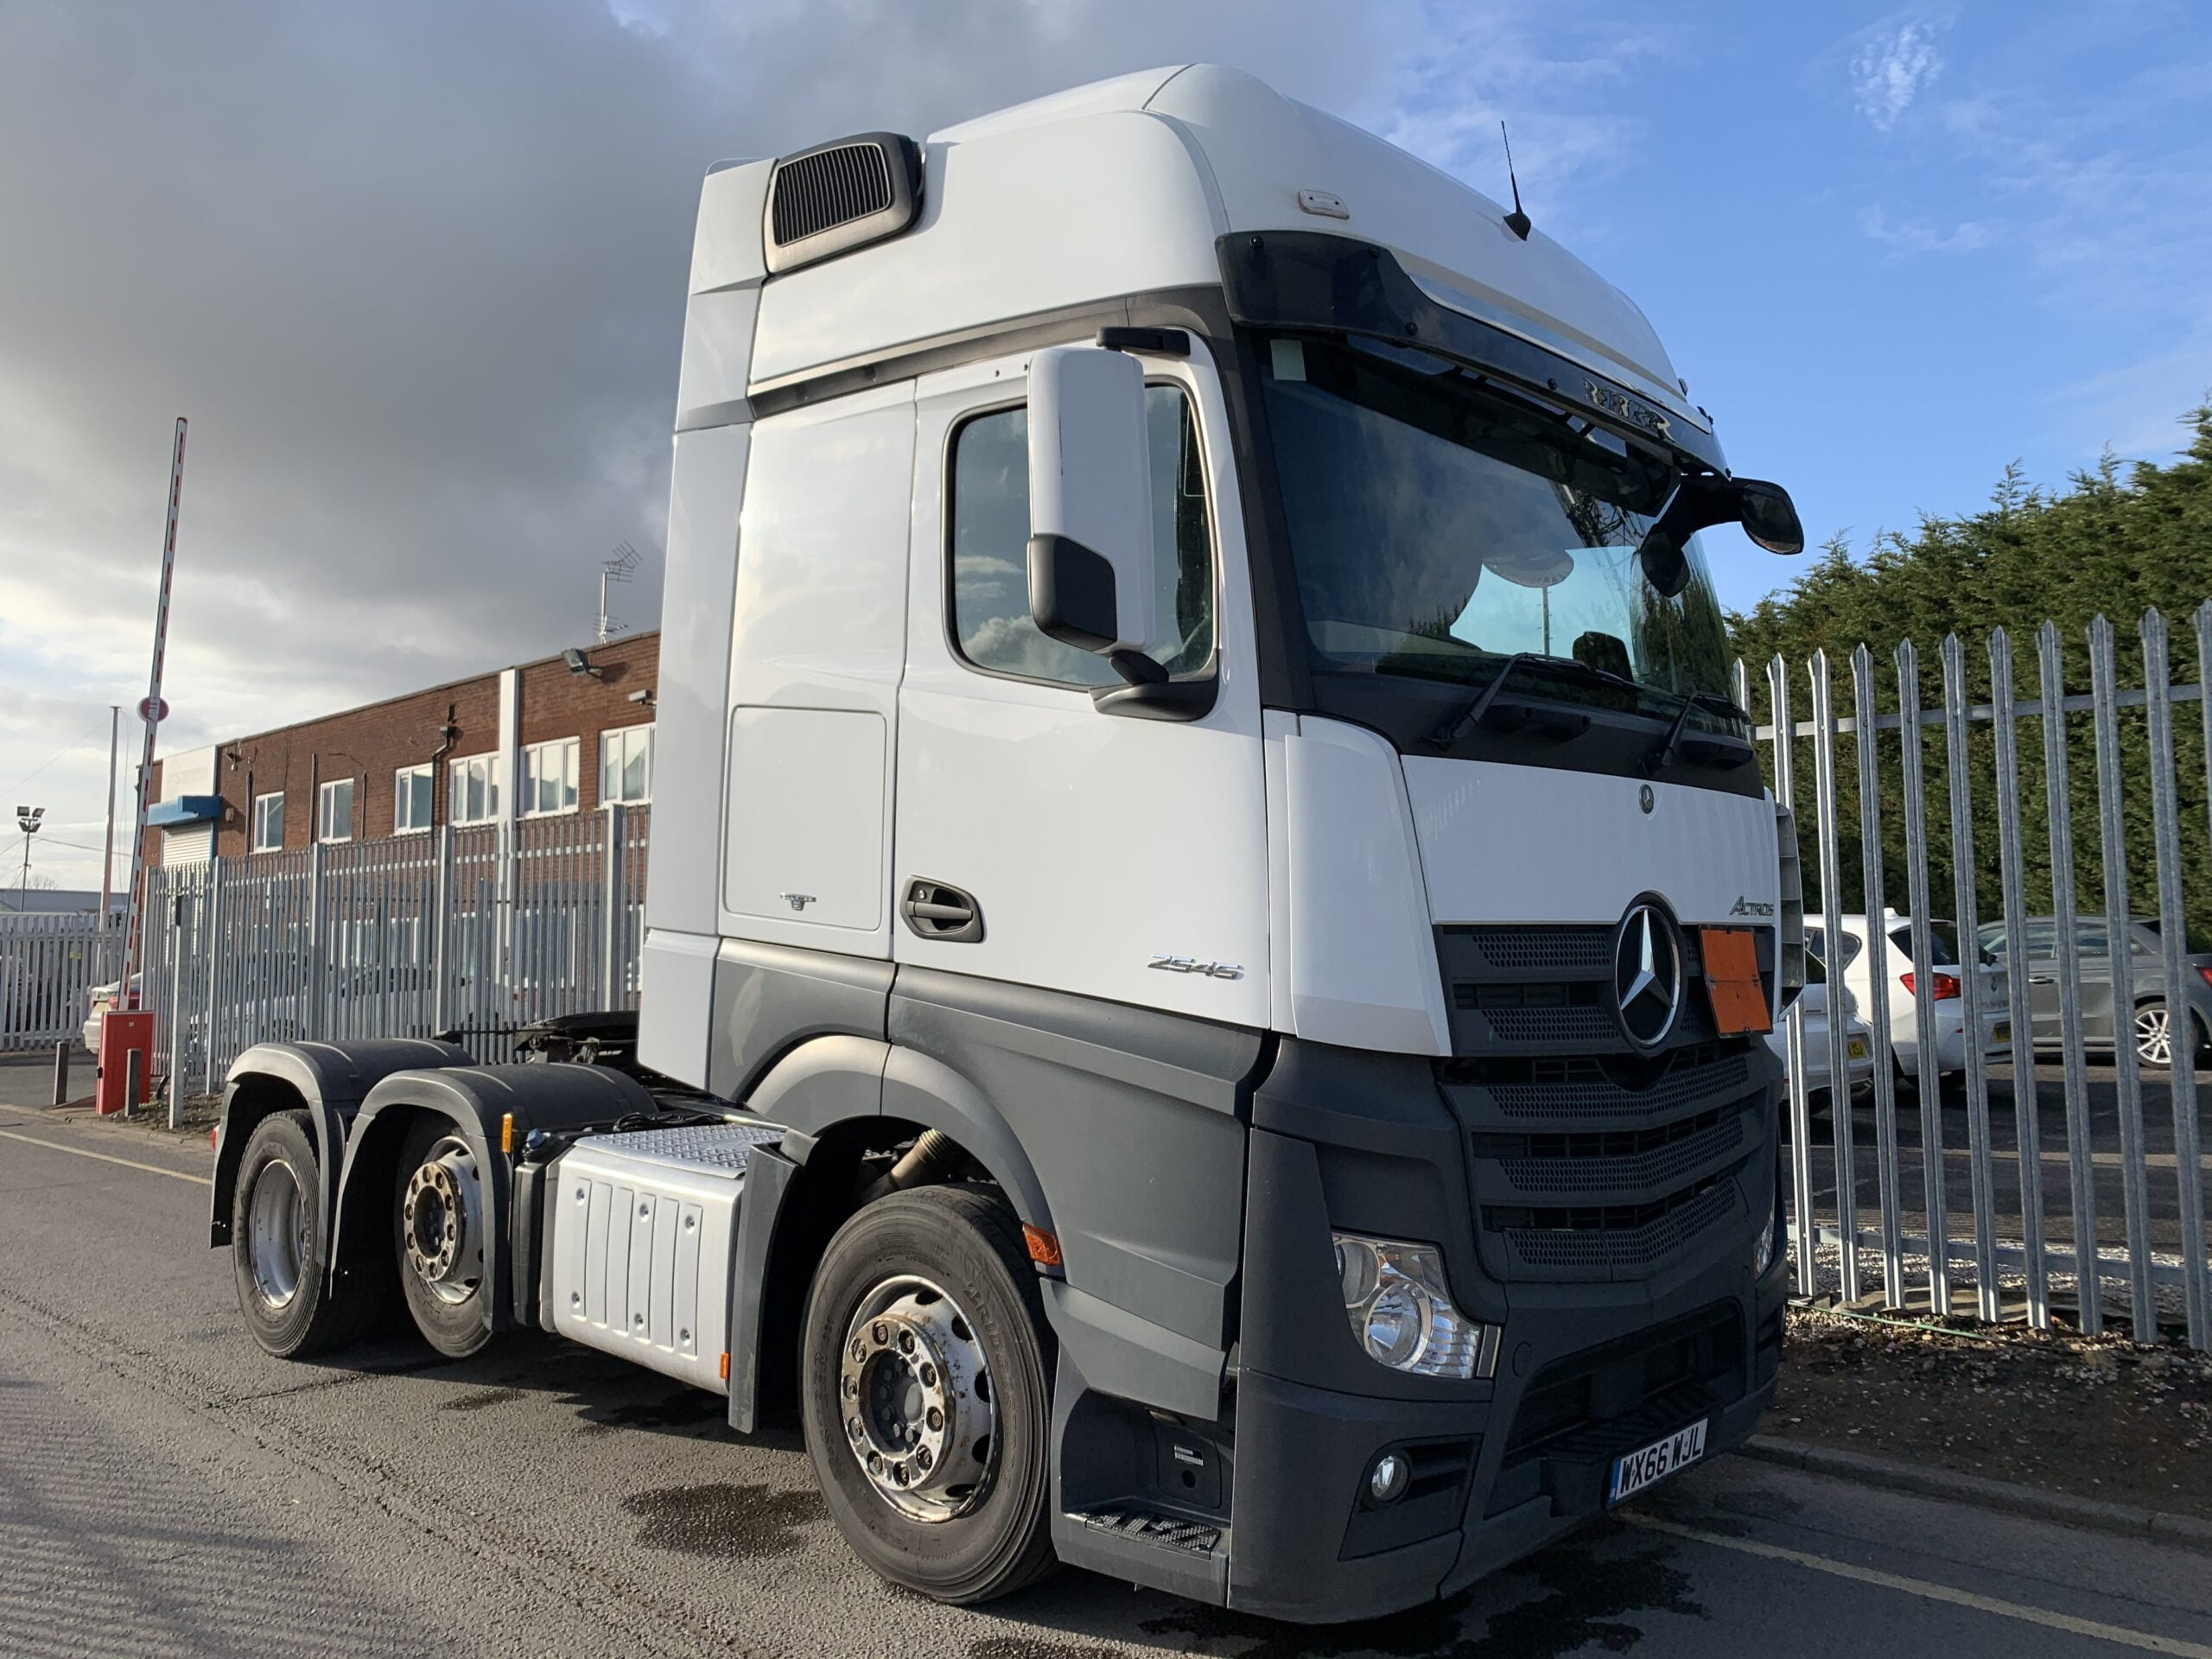 2016 (66) Mercedes Actros 2545, Euro 6, 450bhp, Gigaspace Single Sleeper Cab, Automatic Gearbox, Air Con, Steering Wheel Controls, Radio/USB/Bluetooth, 450 Litre Fuel tank, Low Mileage, Warranty & Choice Available.